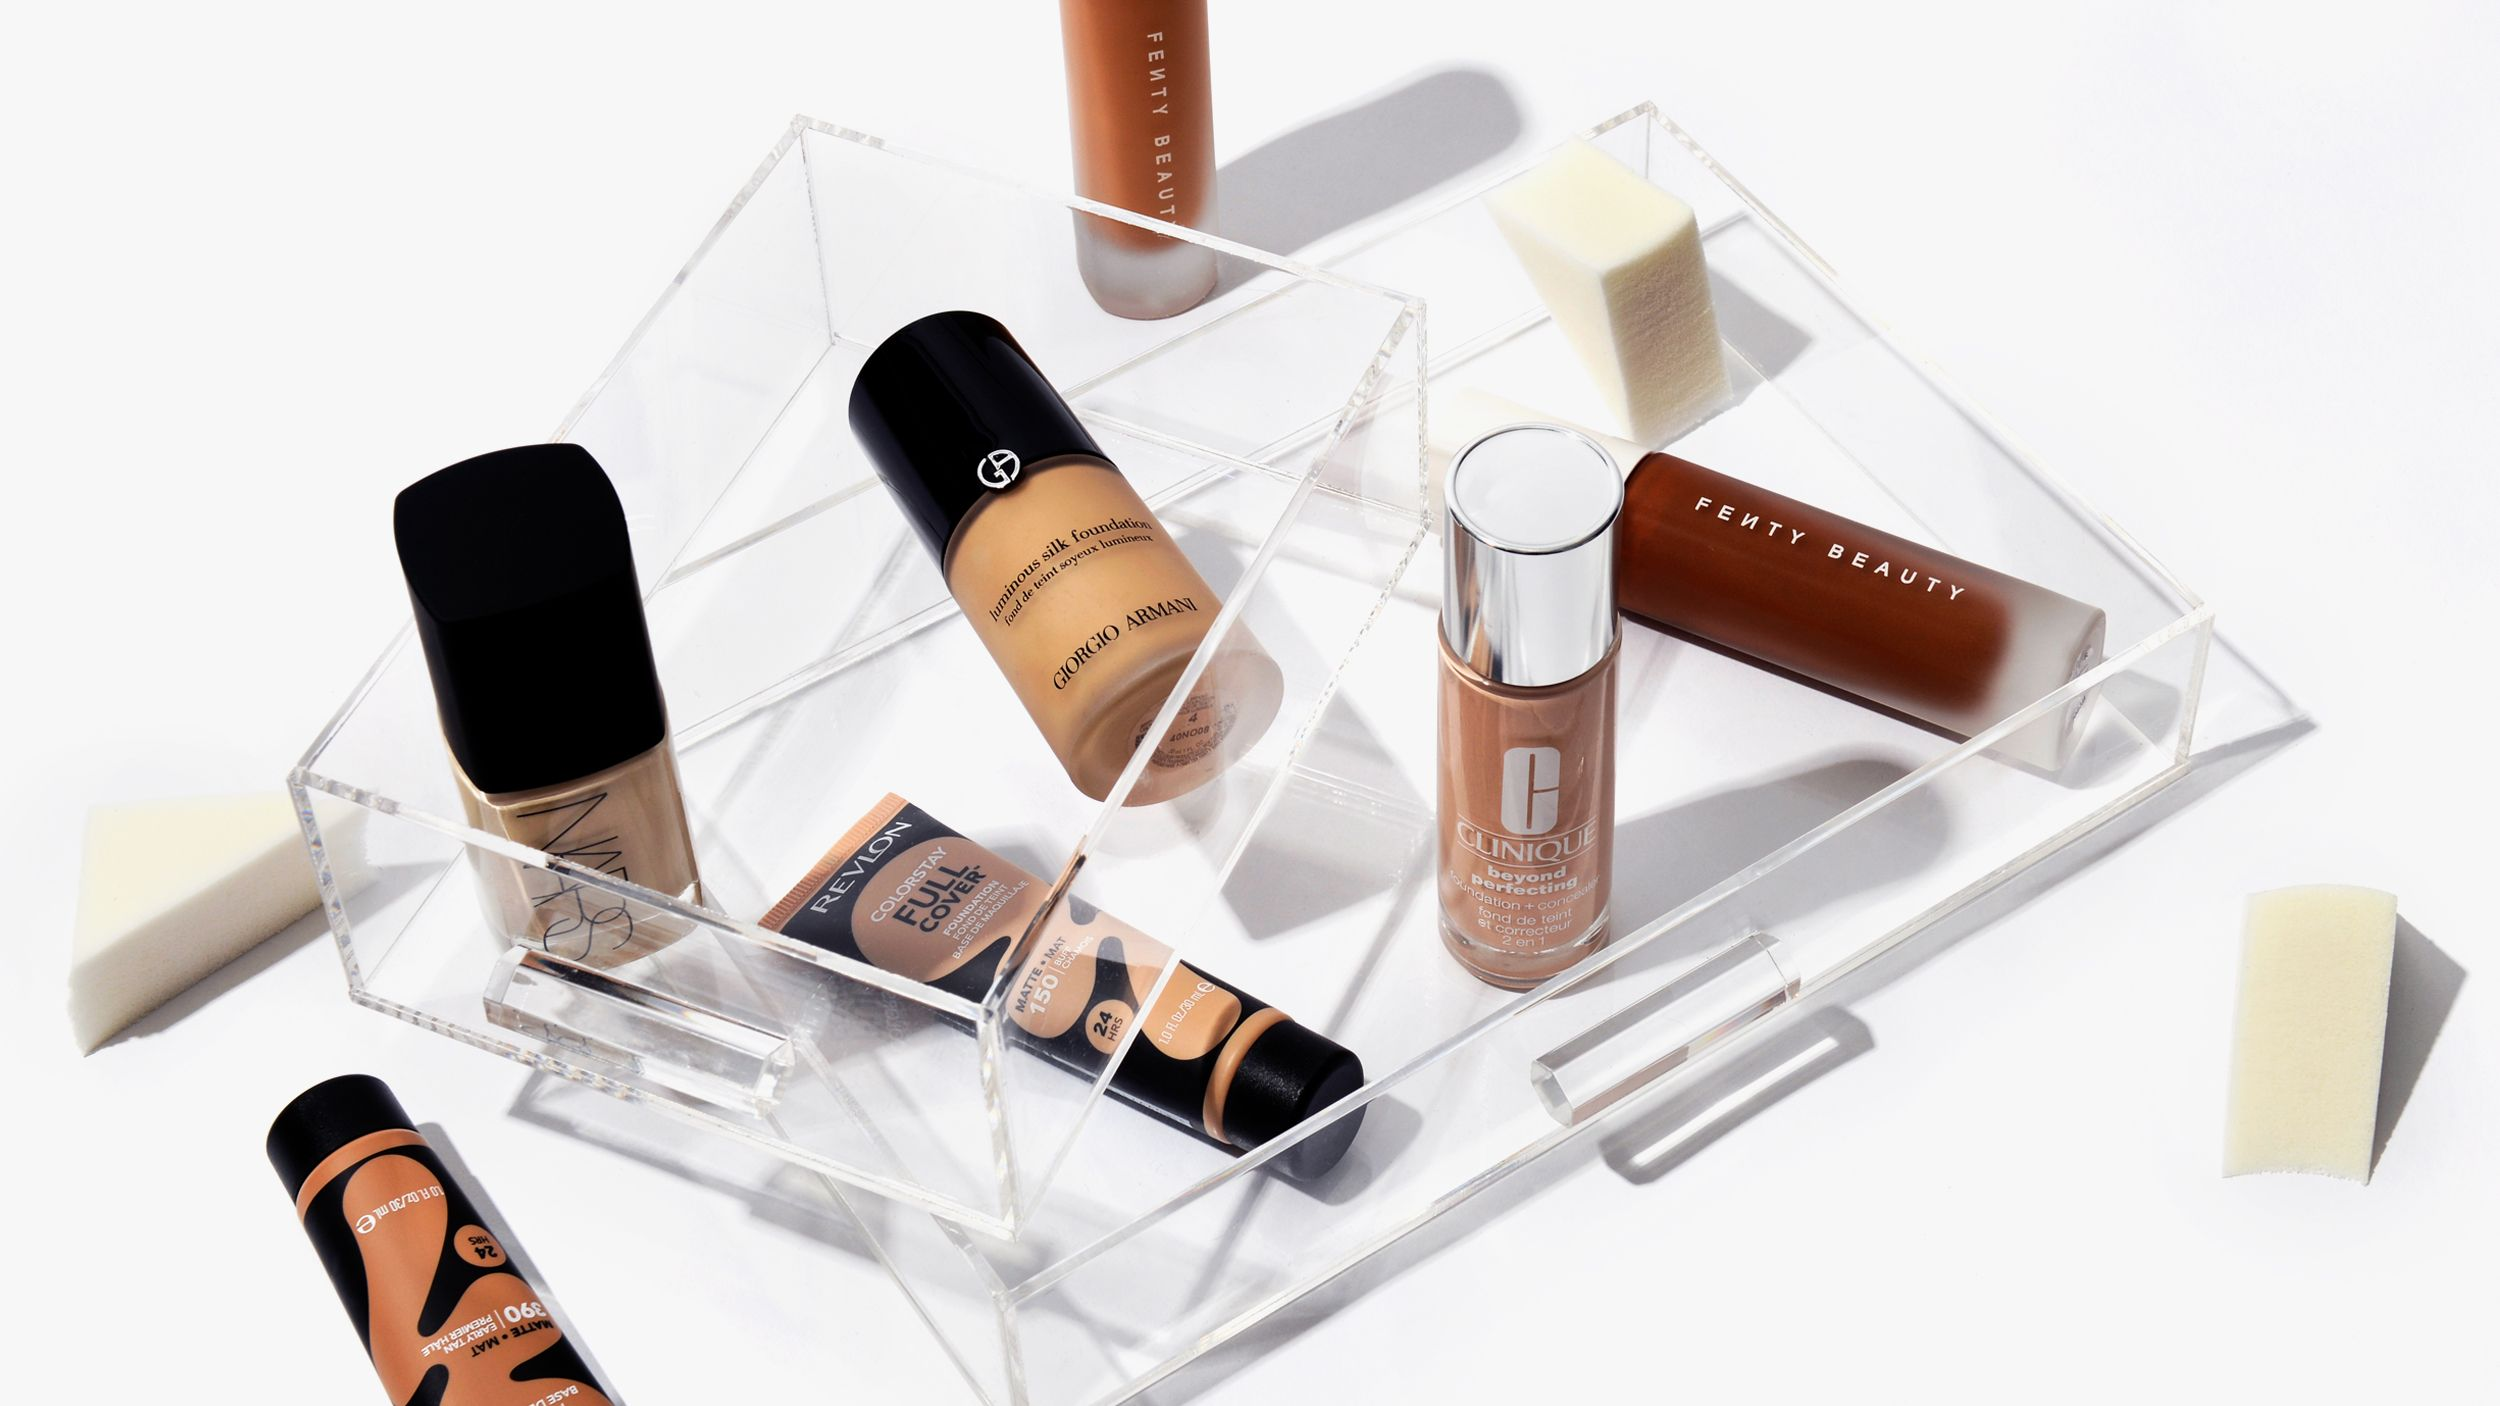 Best rated makeup foundation